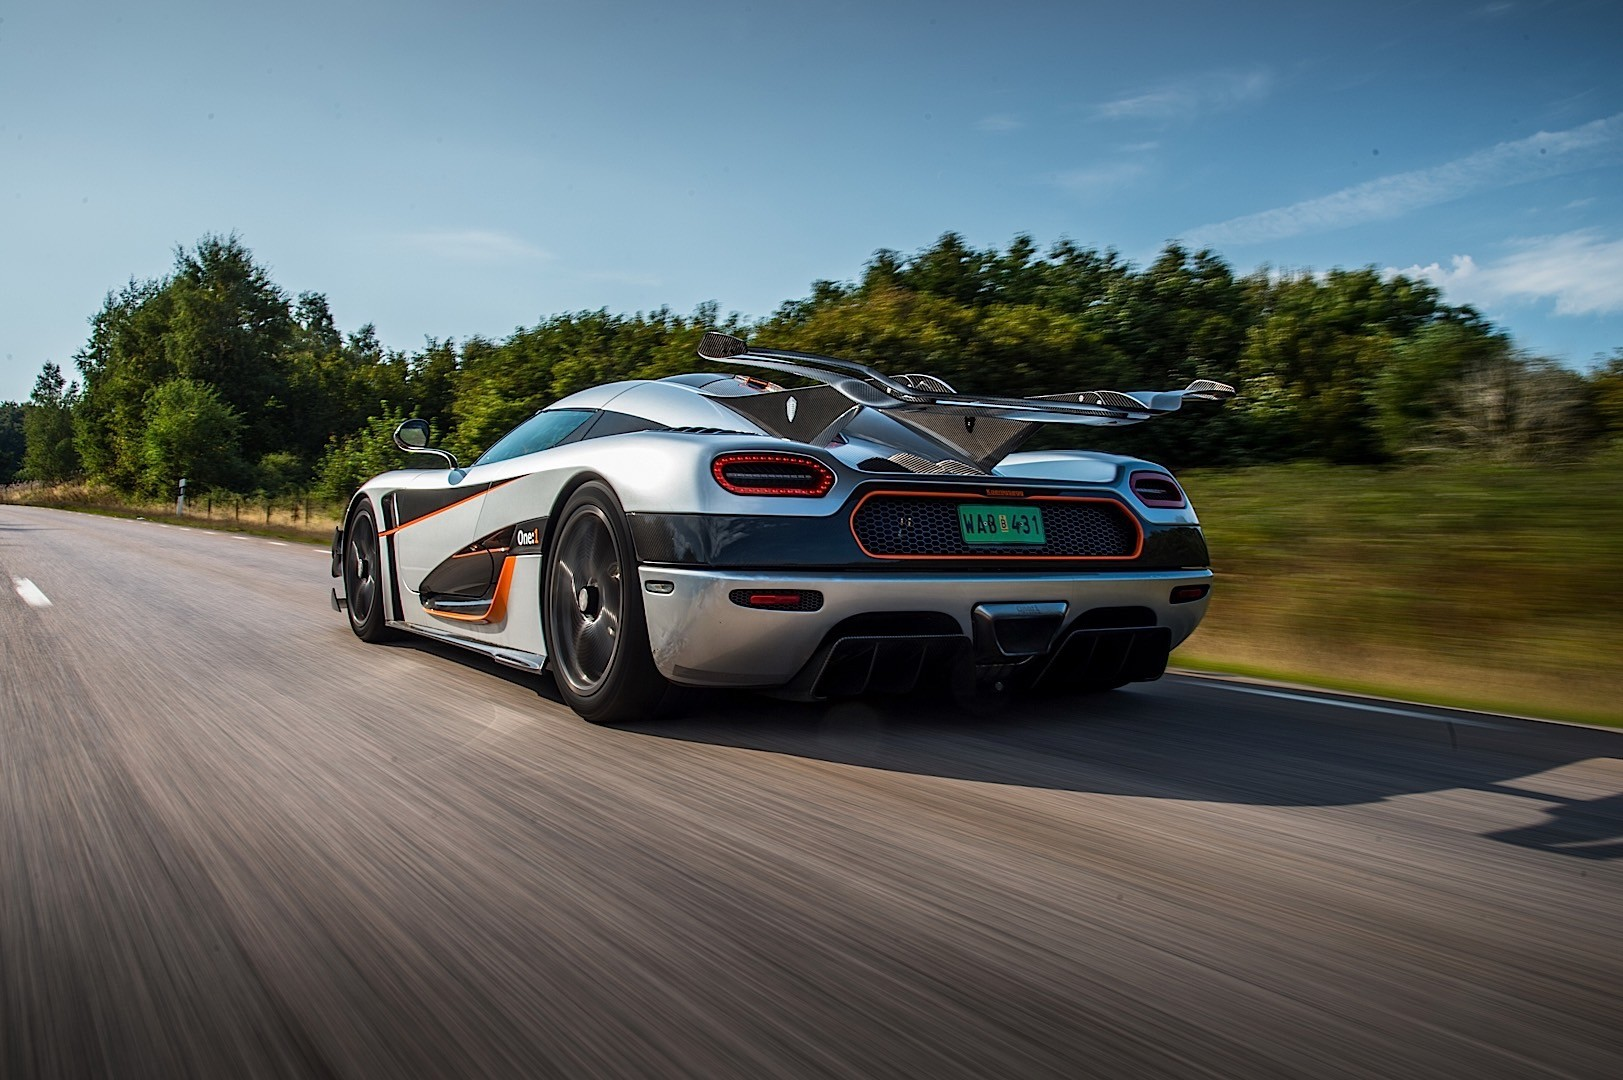 koenigsegg videos video 1 - photo #27